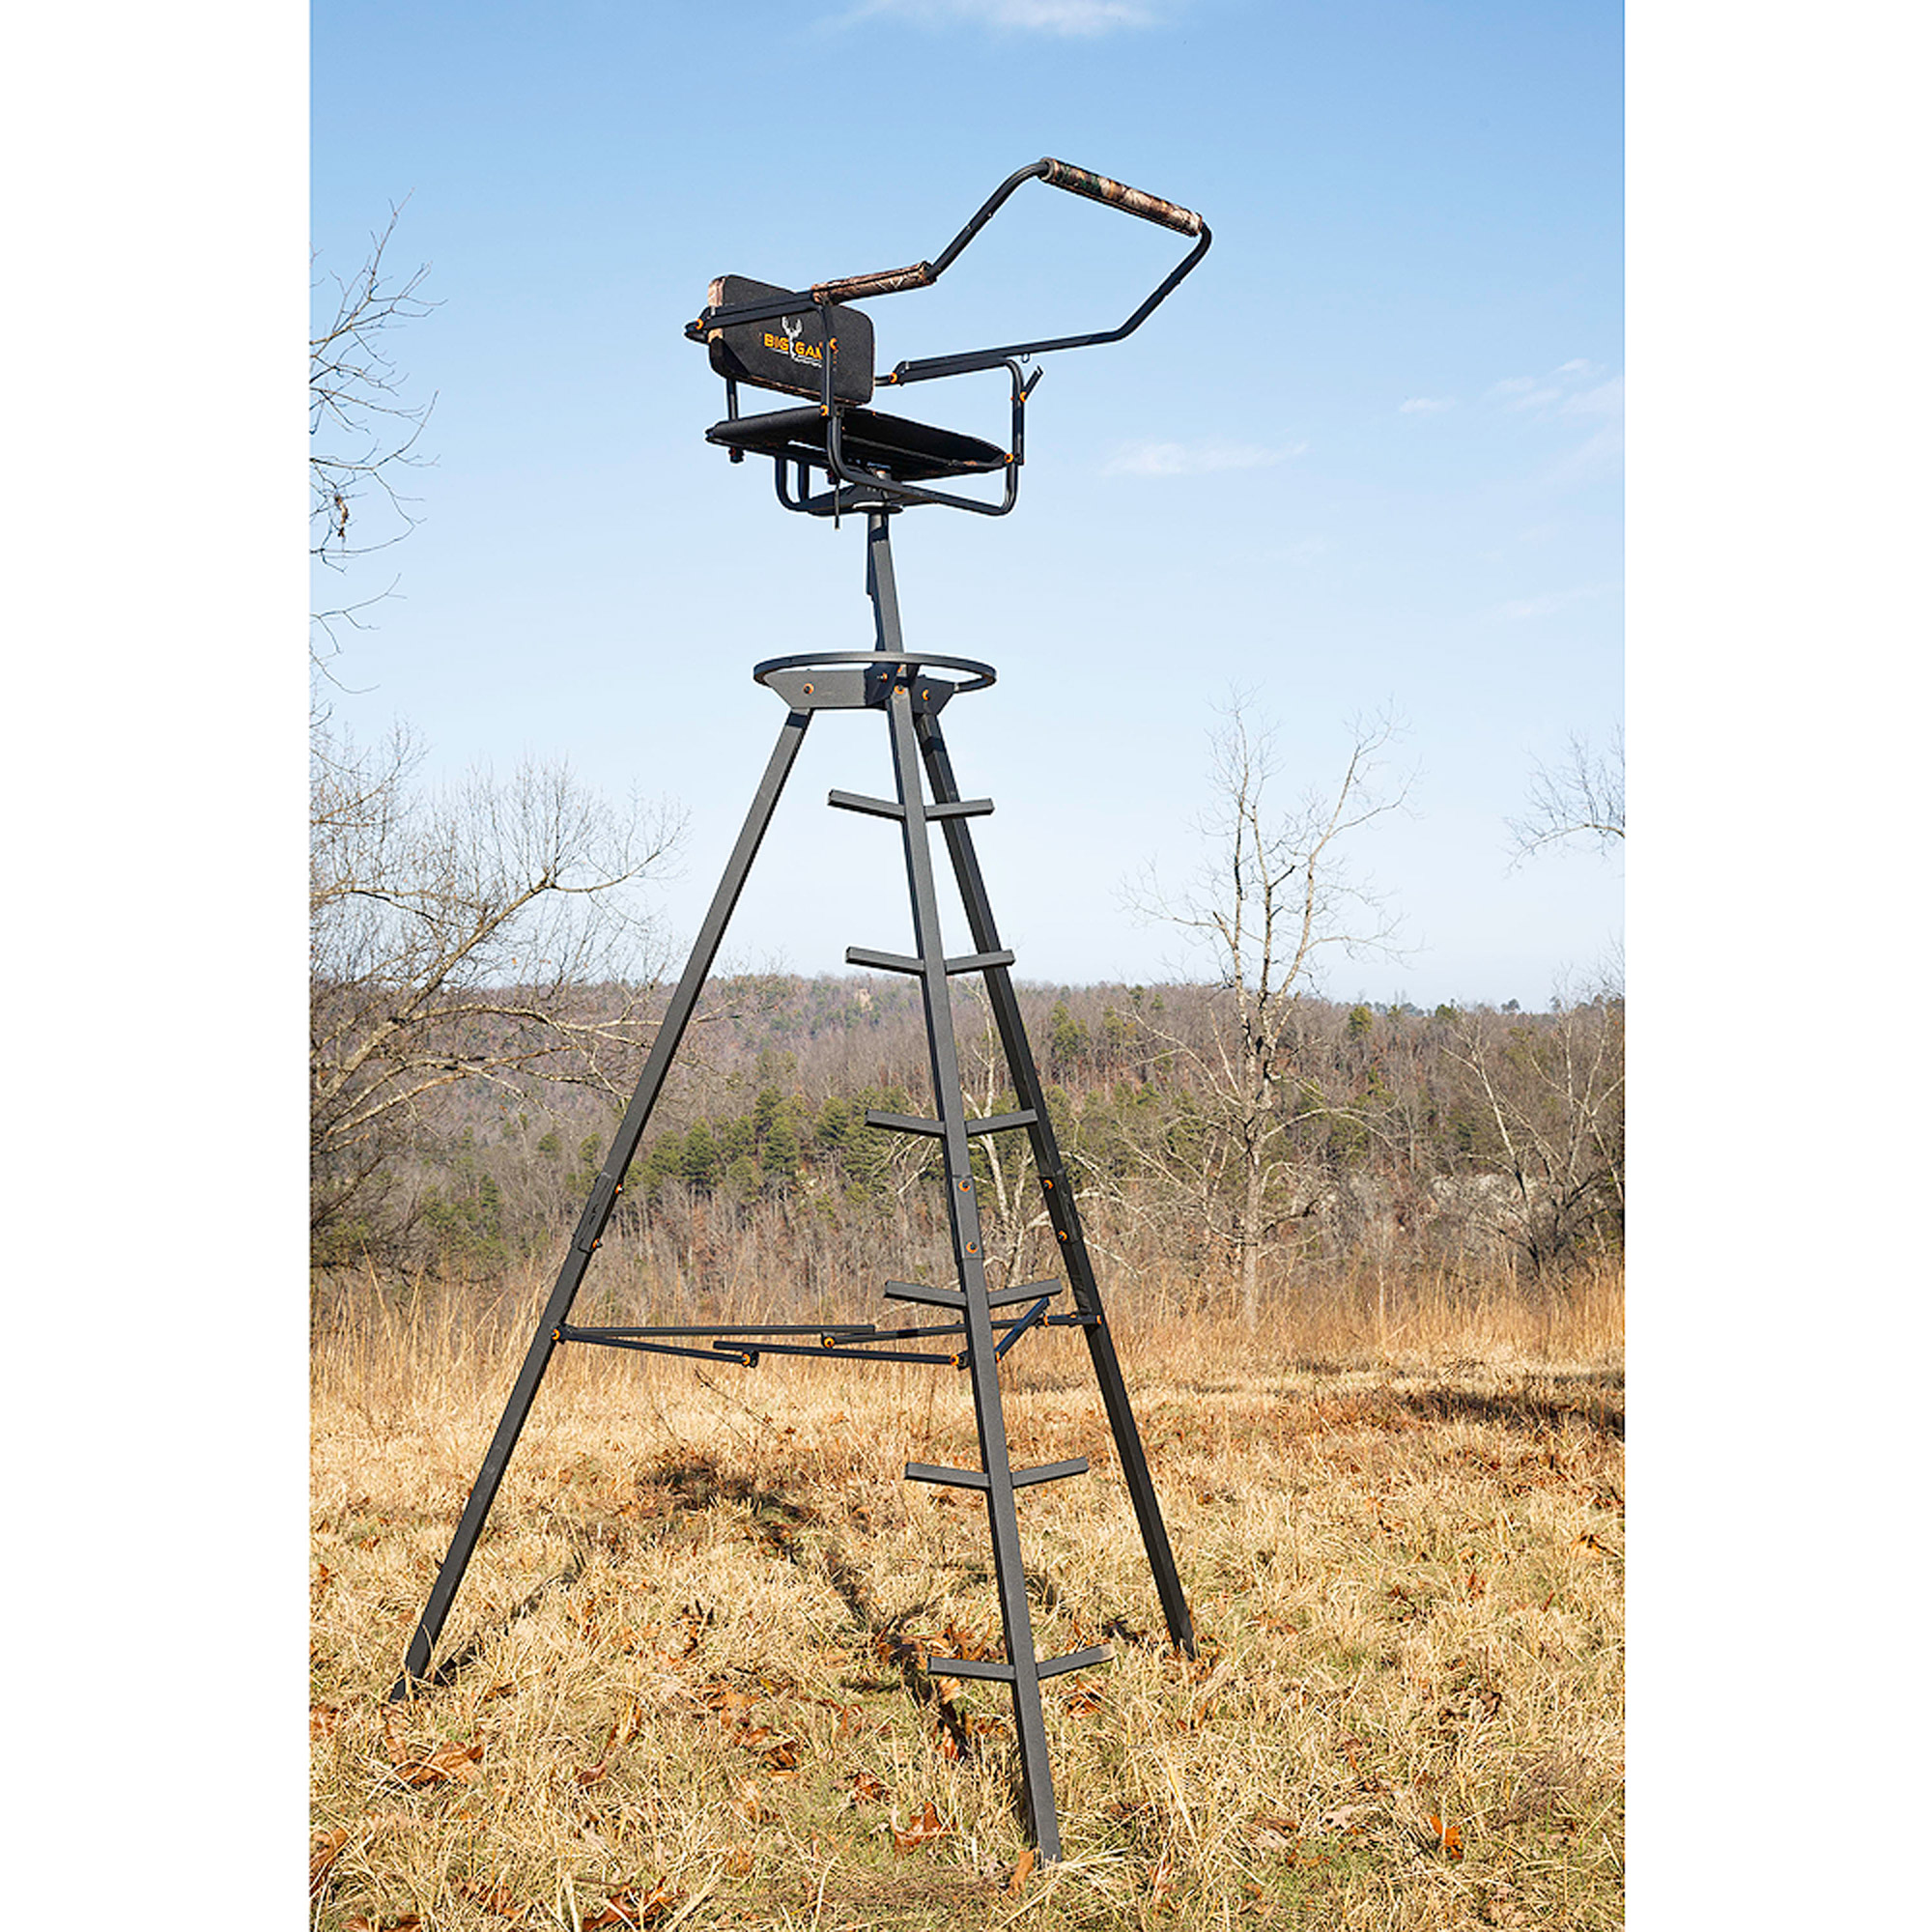 Big Game 10' Portable Tripod